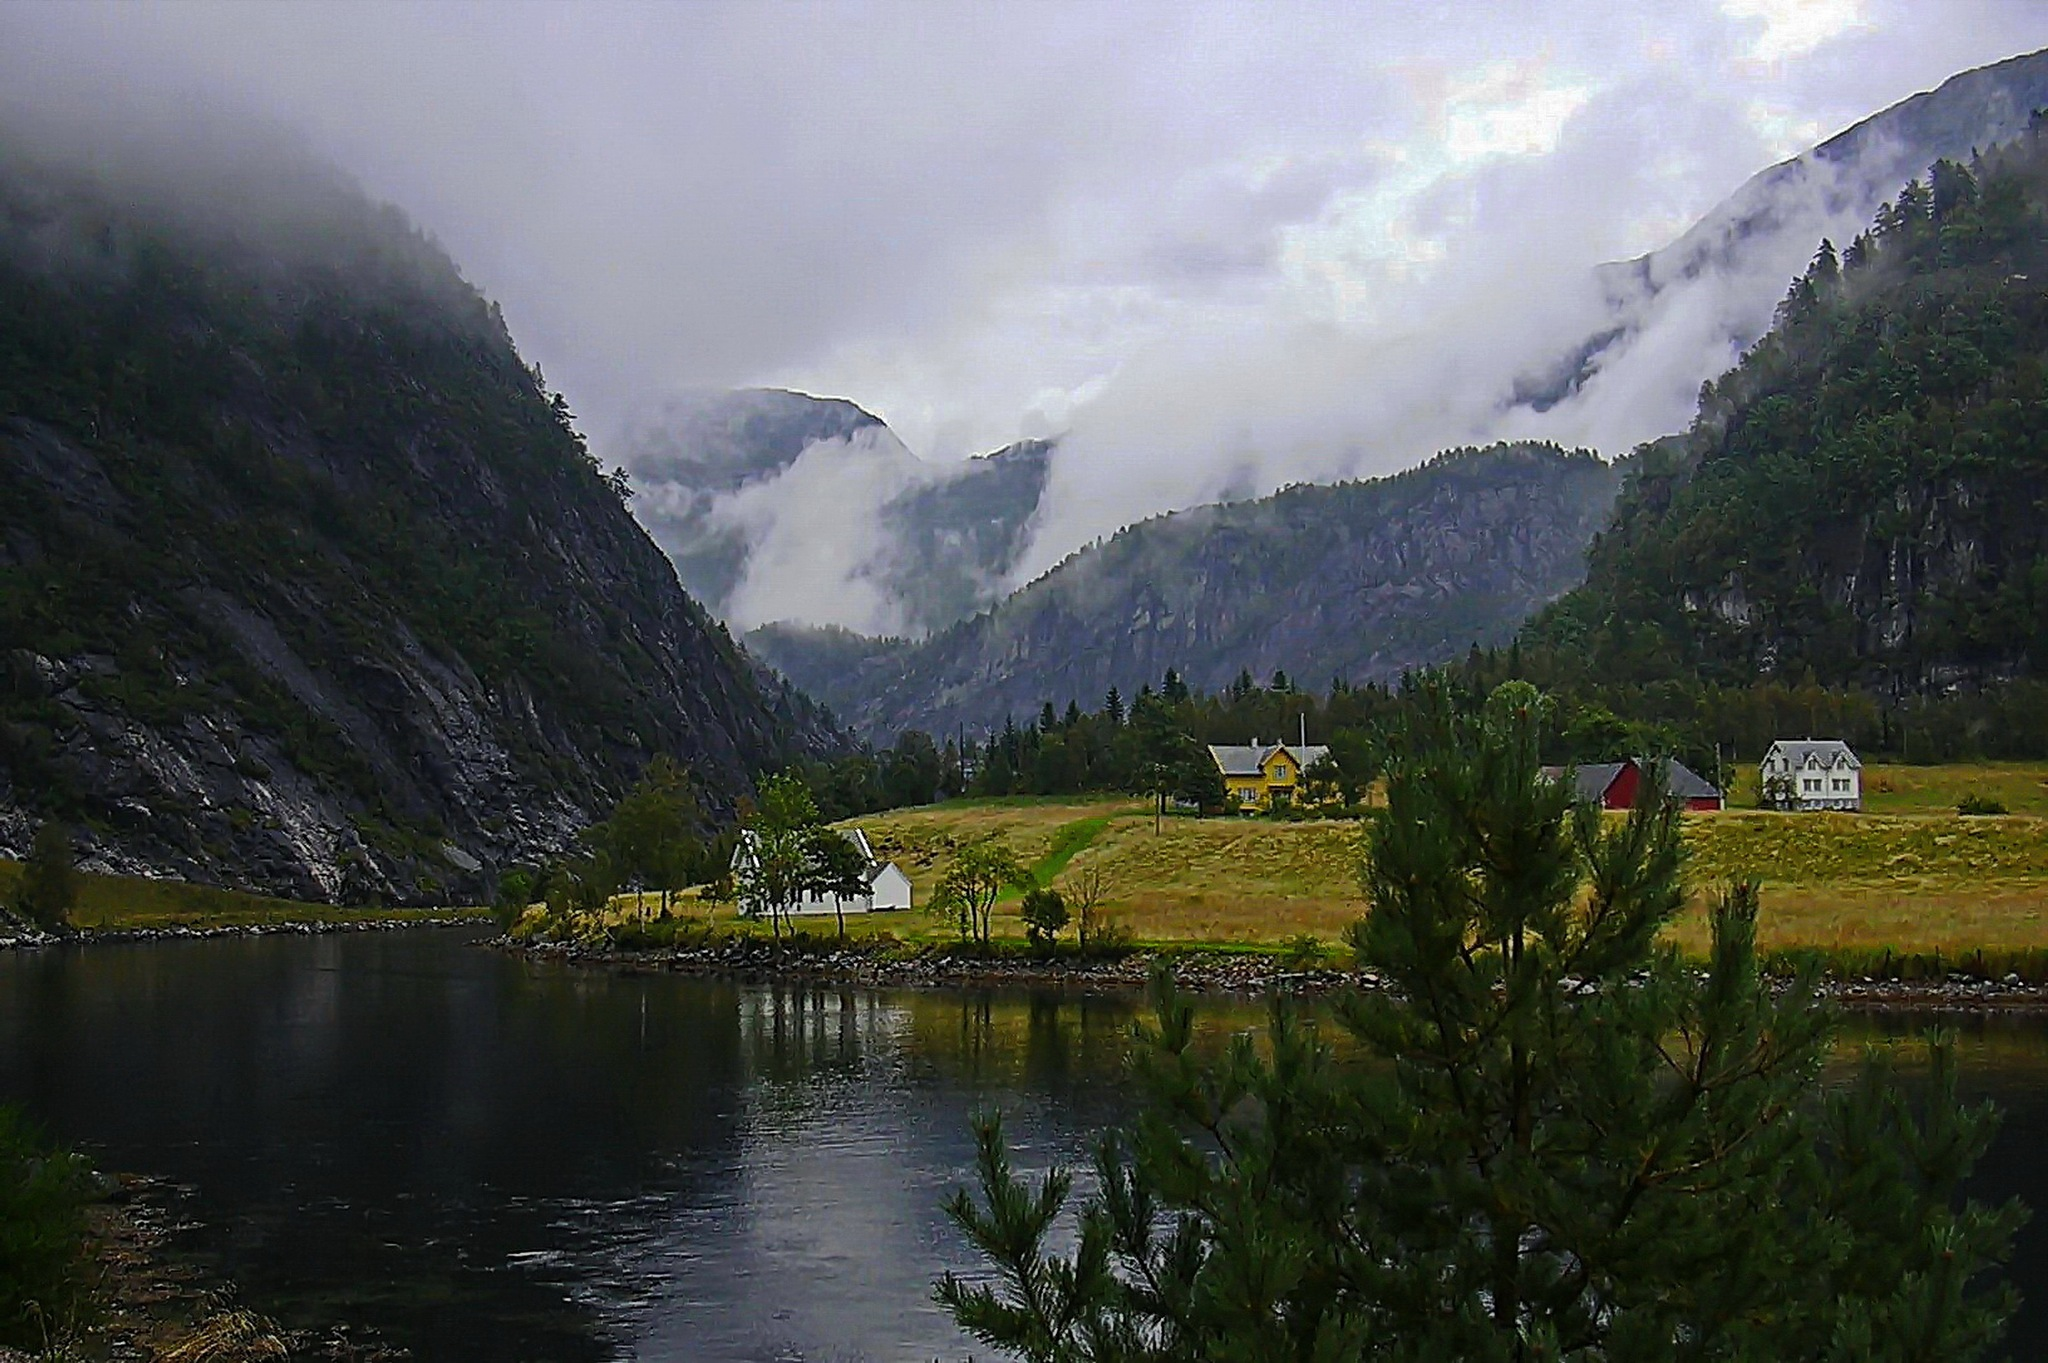 Fjord and mountains, it,s western Norway by Per Molvik